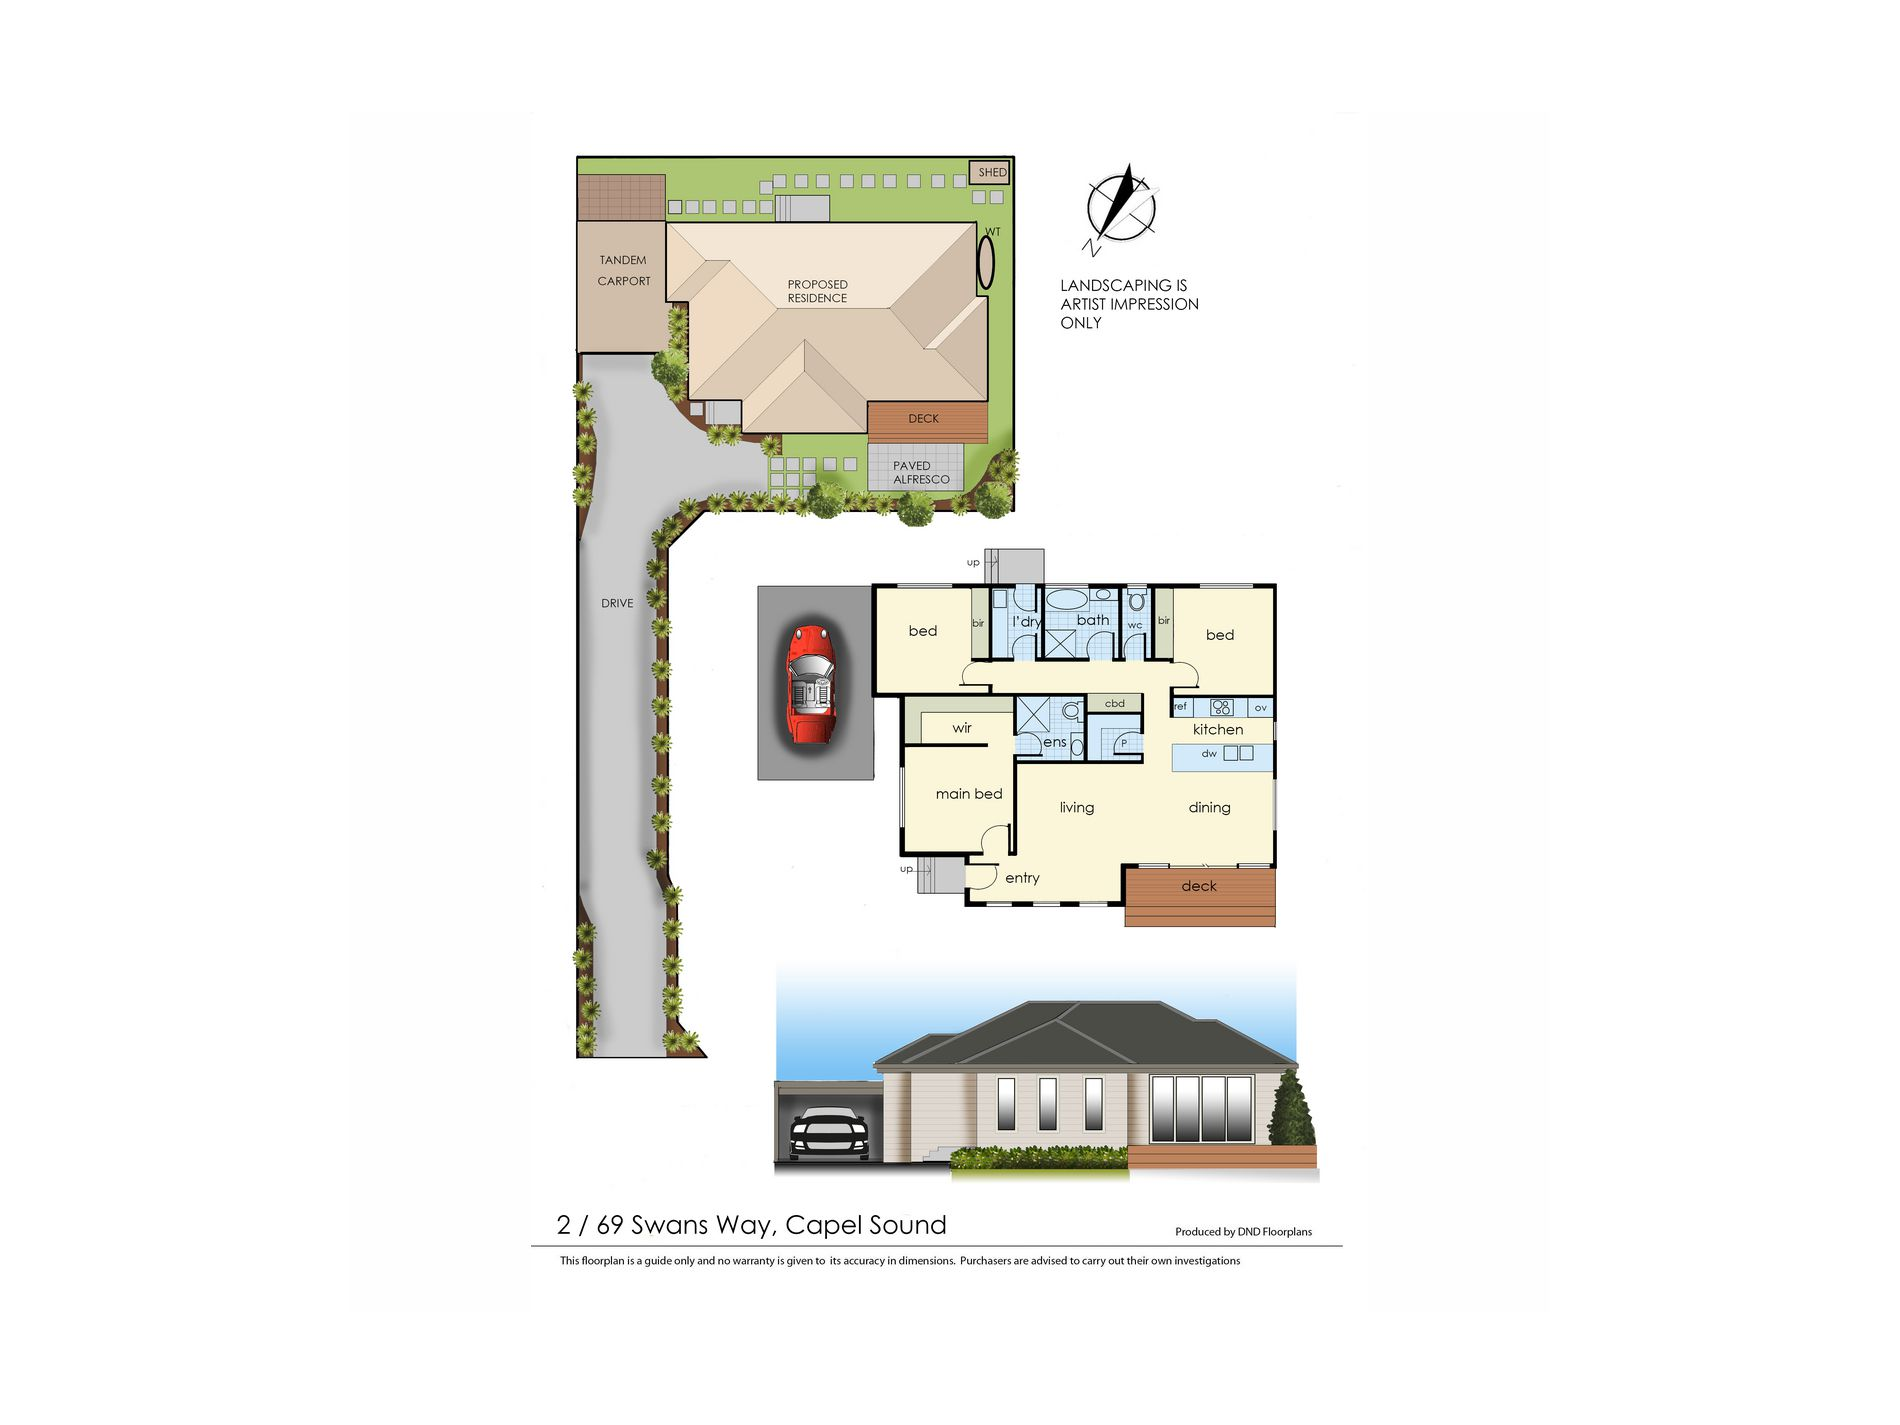 Lot 2, 69 Swans Way, Capel Sound